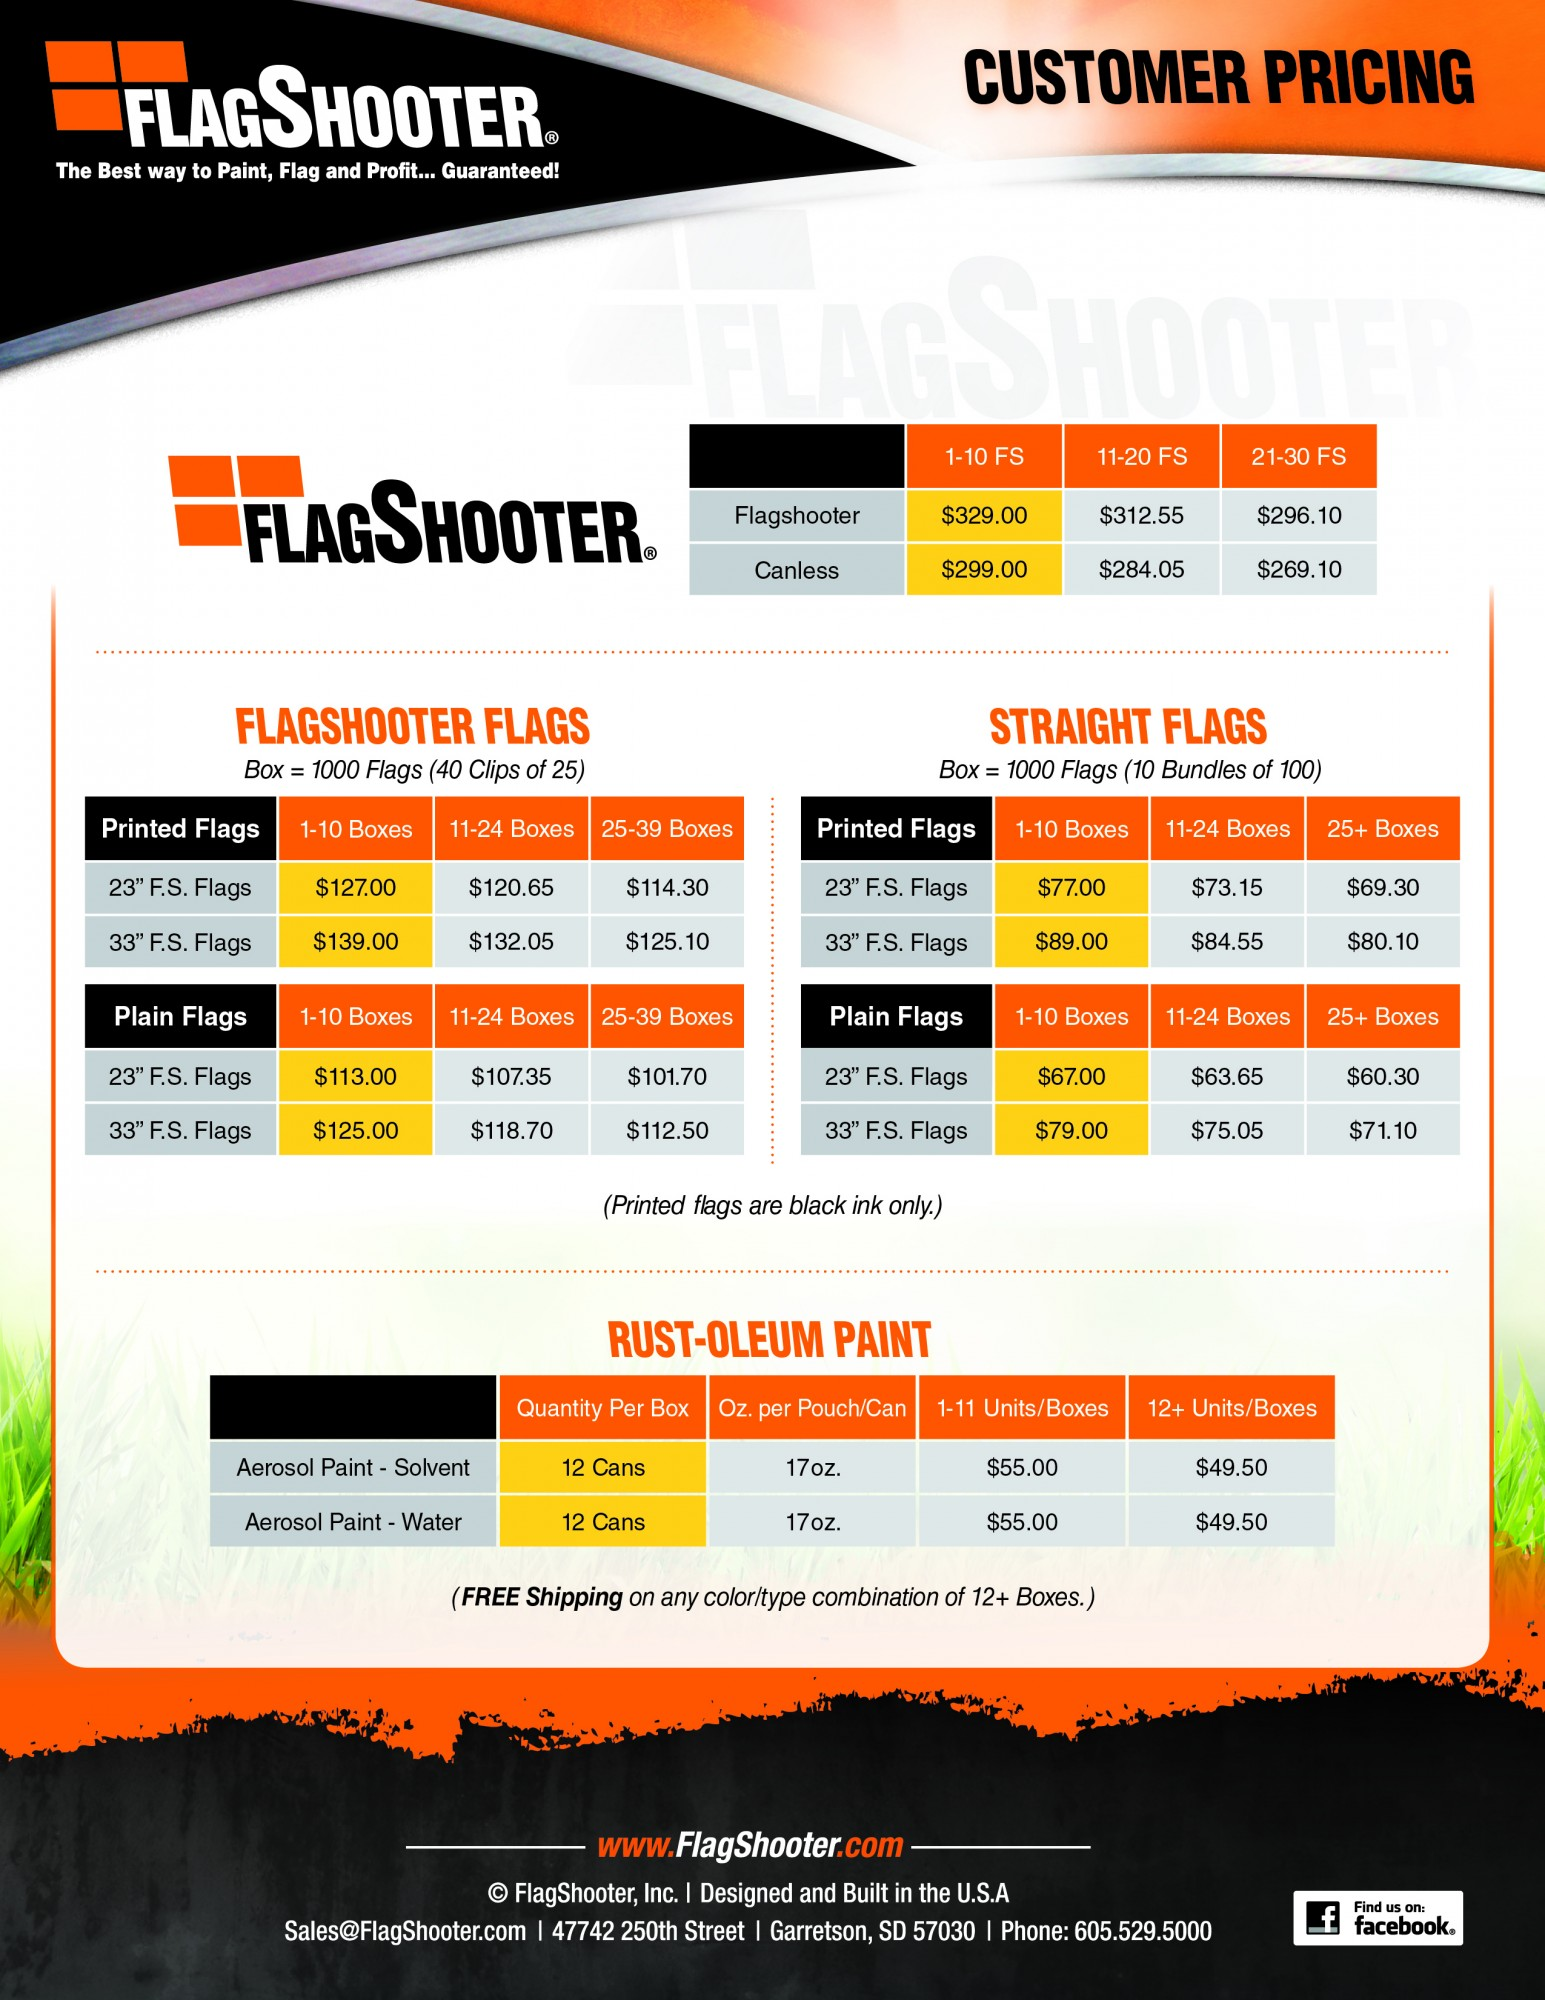 Flagshooter Bundles and Special Flagshooter Pricing